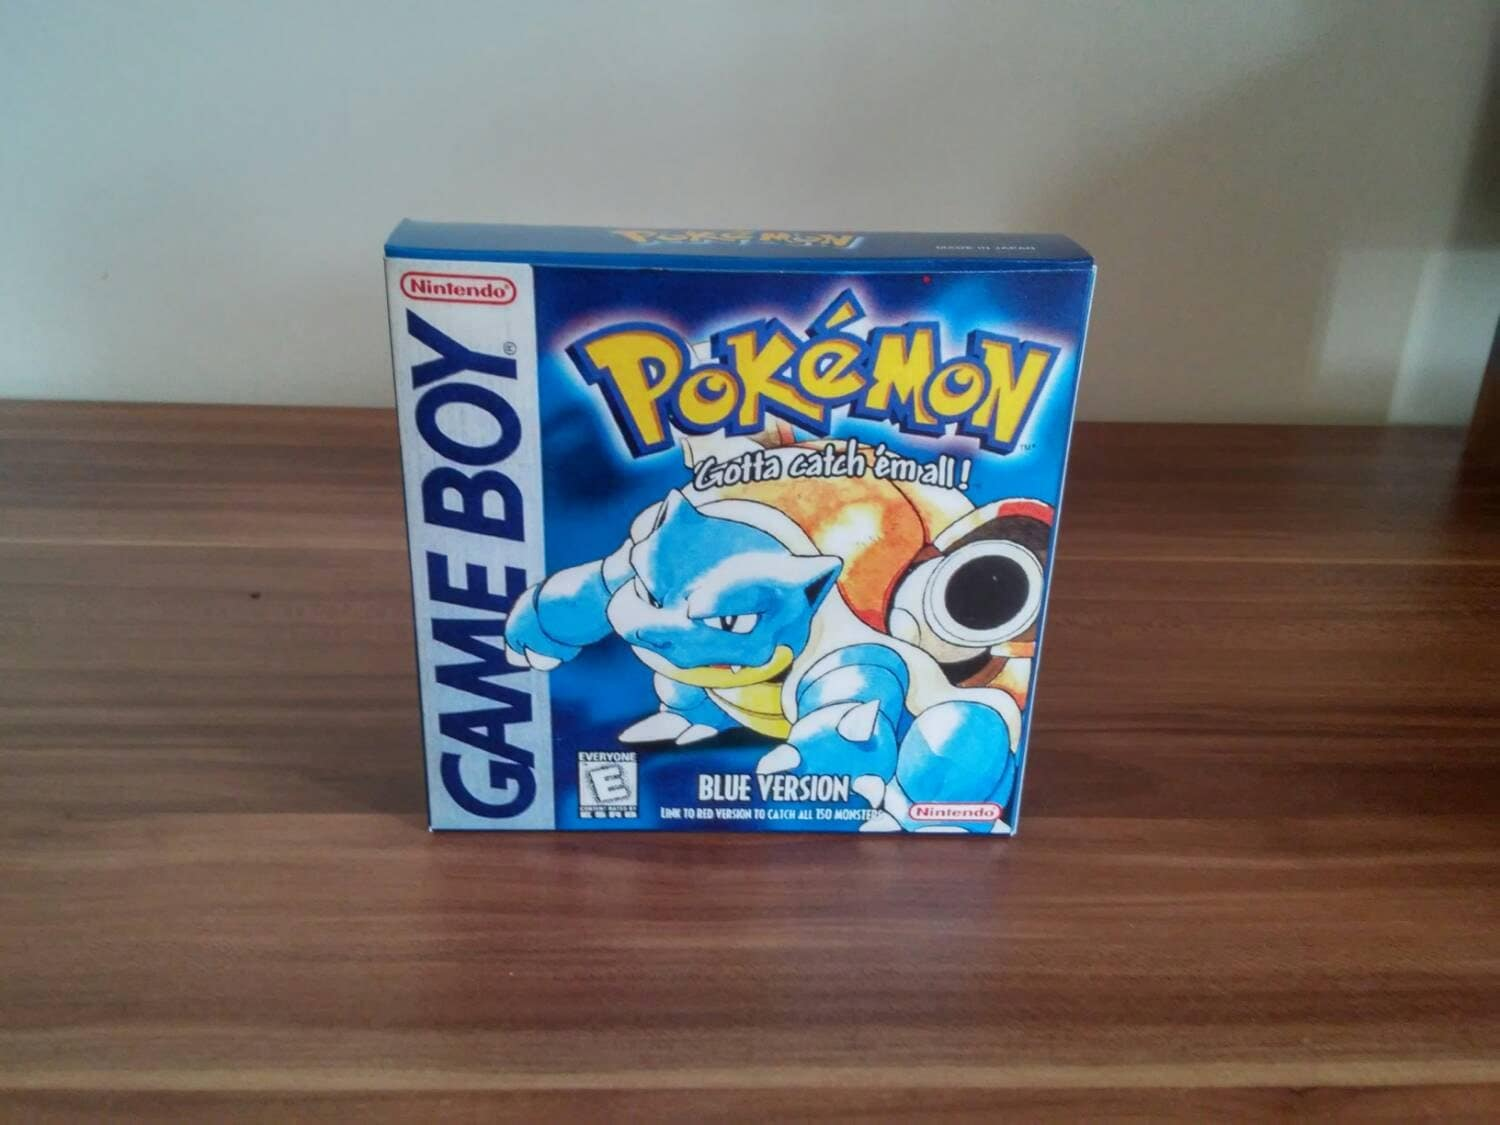 Game Boy Pokemon Blue  NTSC or Pal Repro Box with Insert NO GAME Included